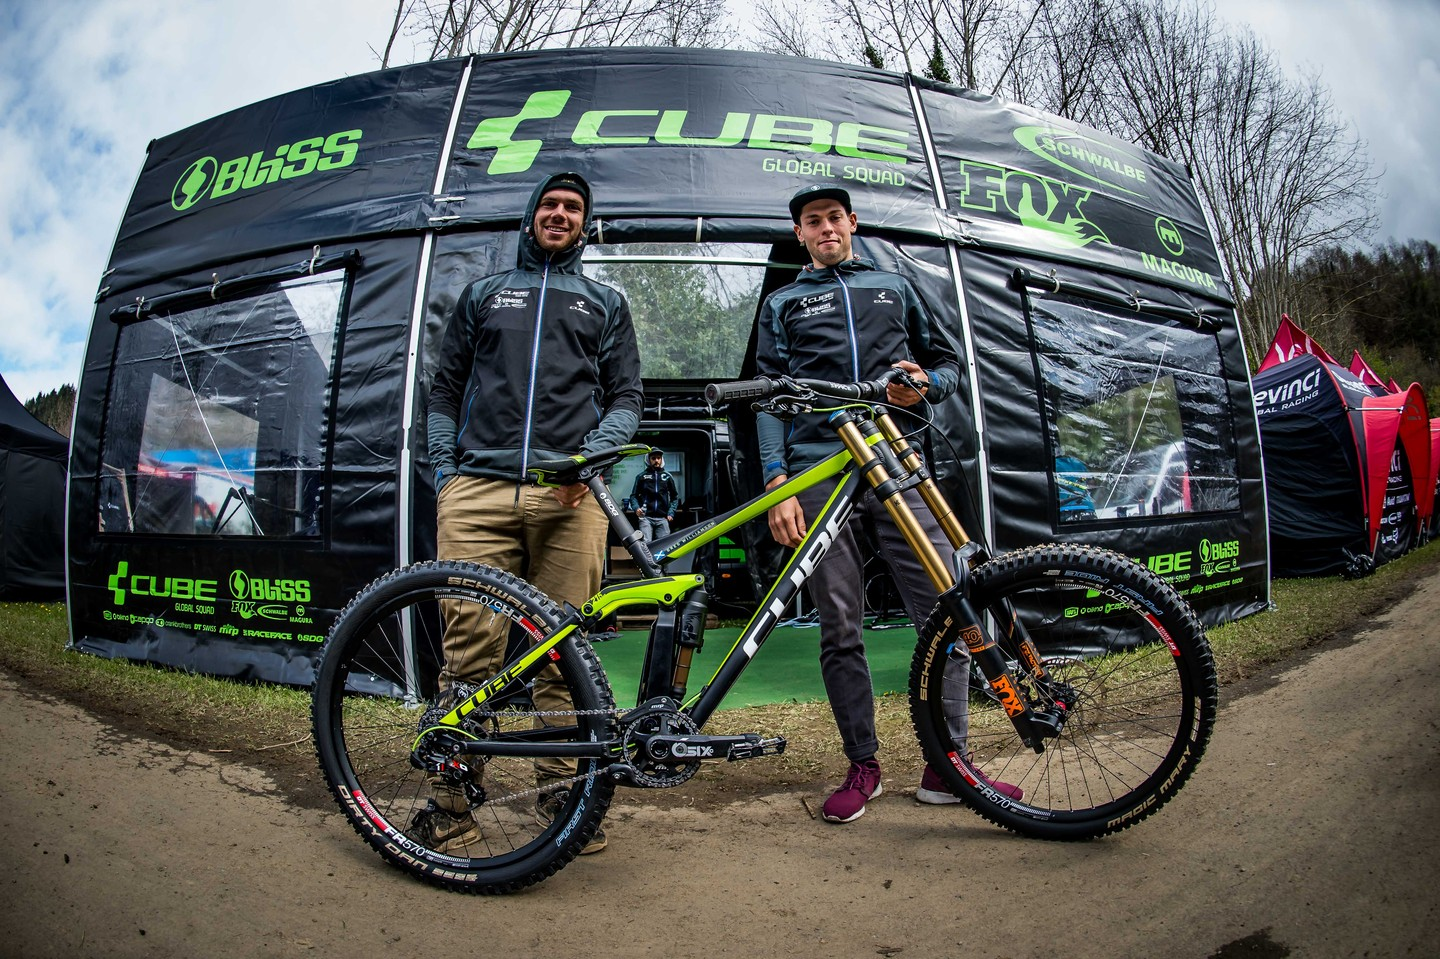 Matt Walker et Greg Williamson sur le paddock avant les épreuves de qualification. © photo : Nathan Hughes